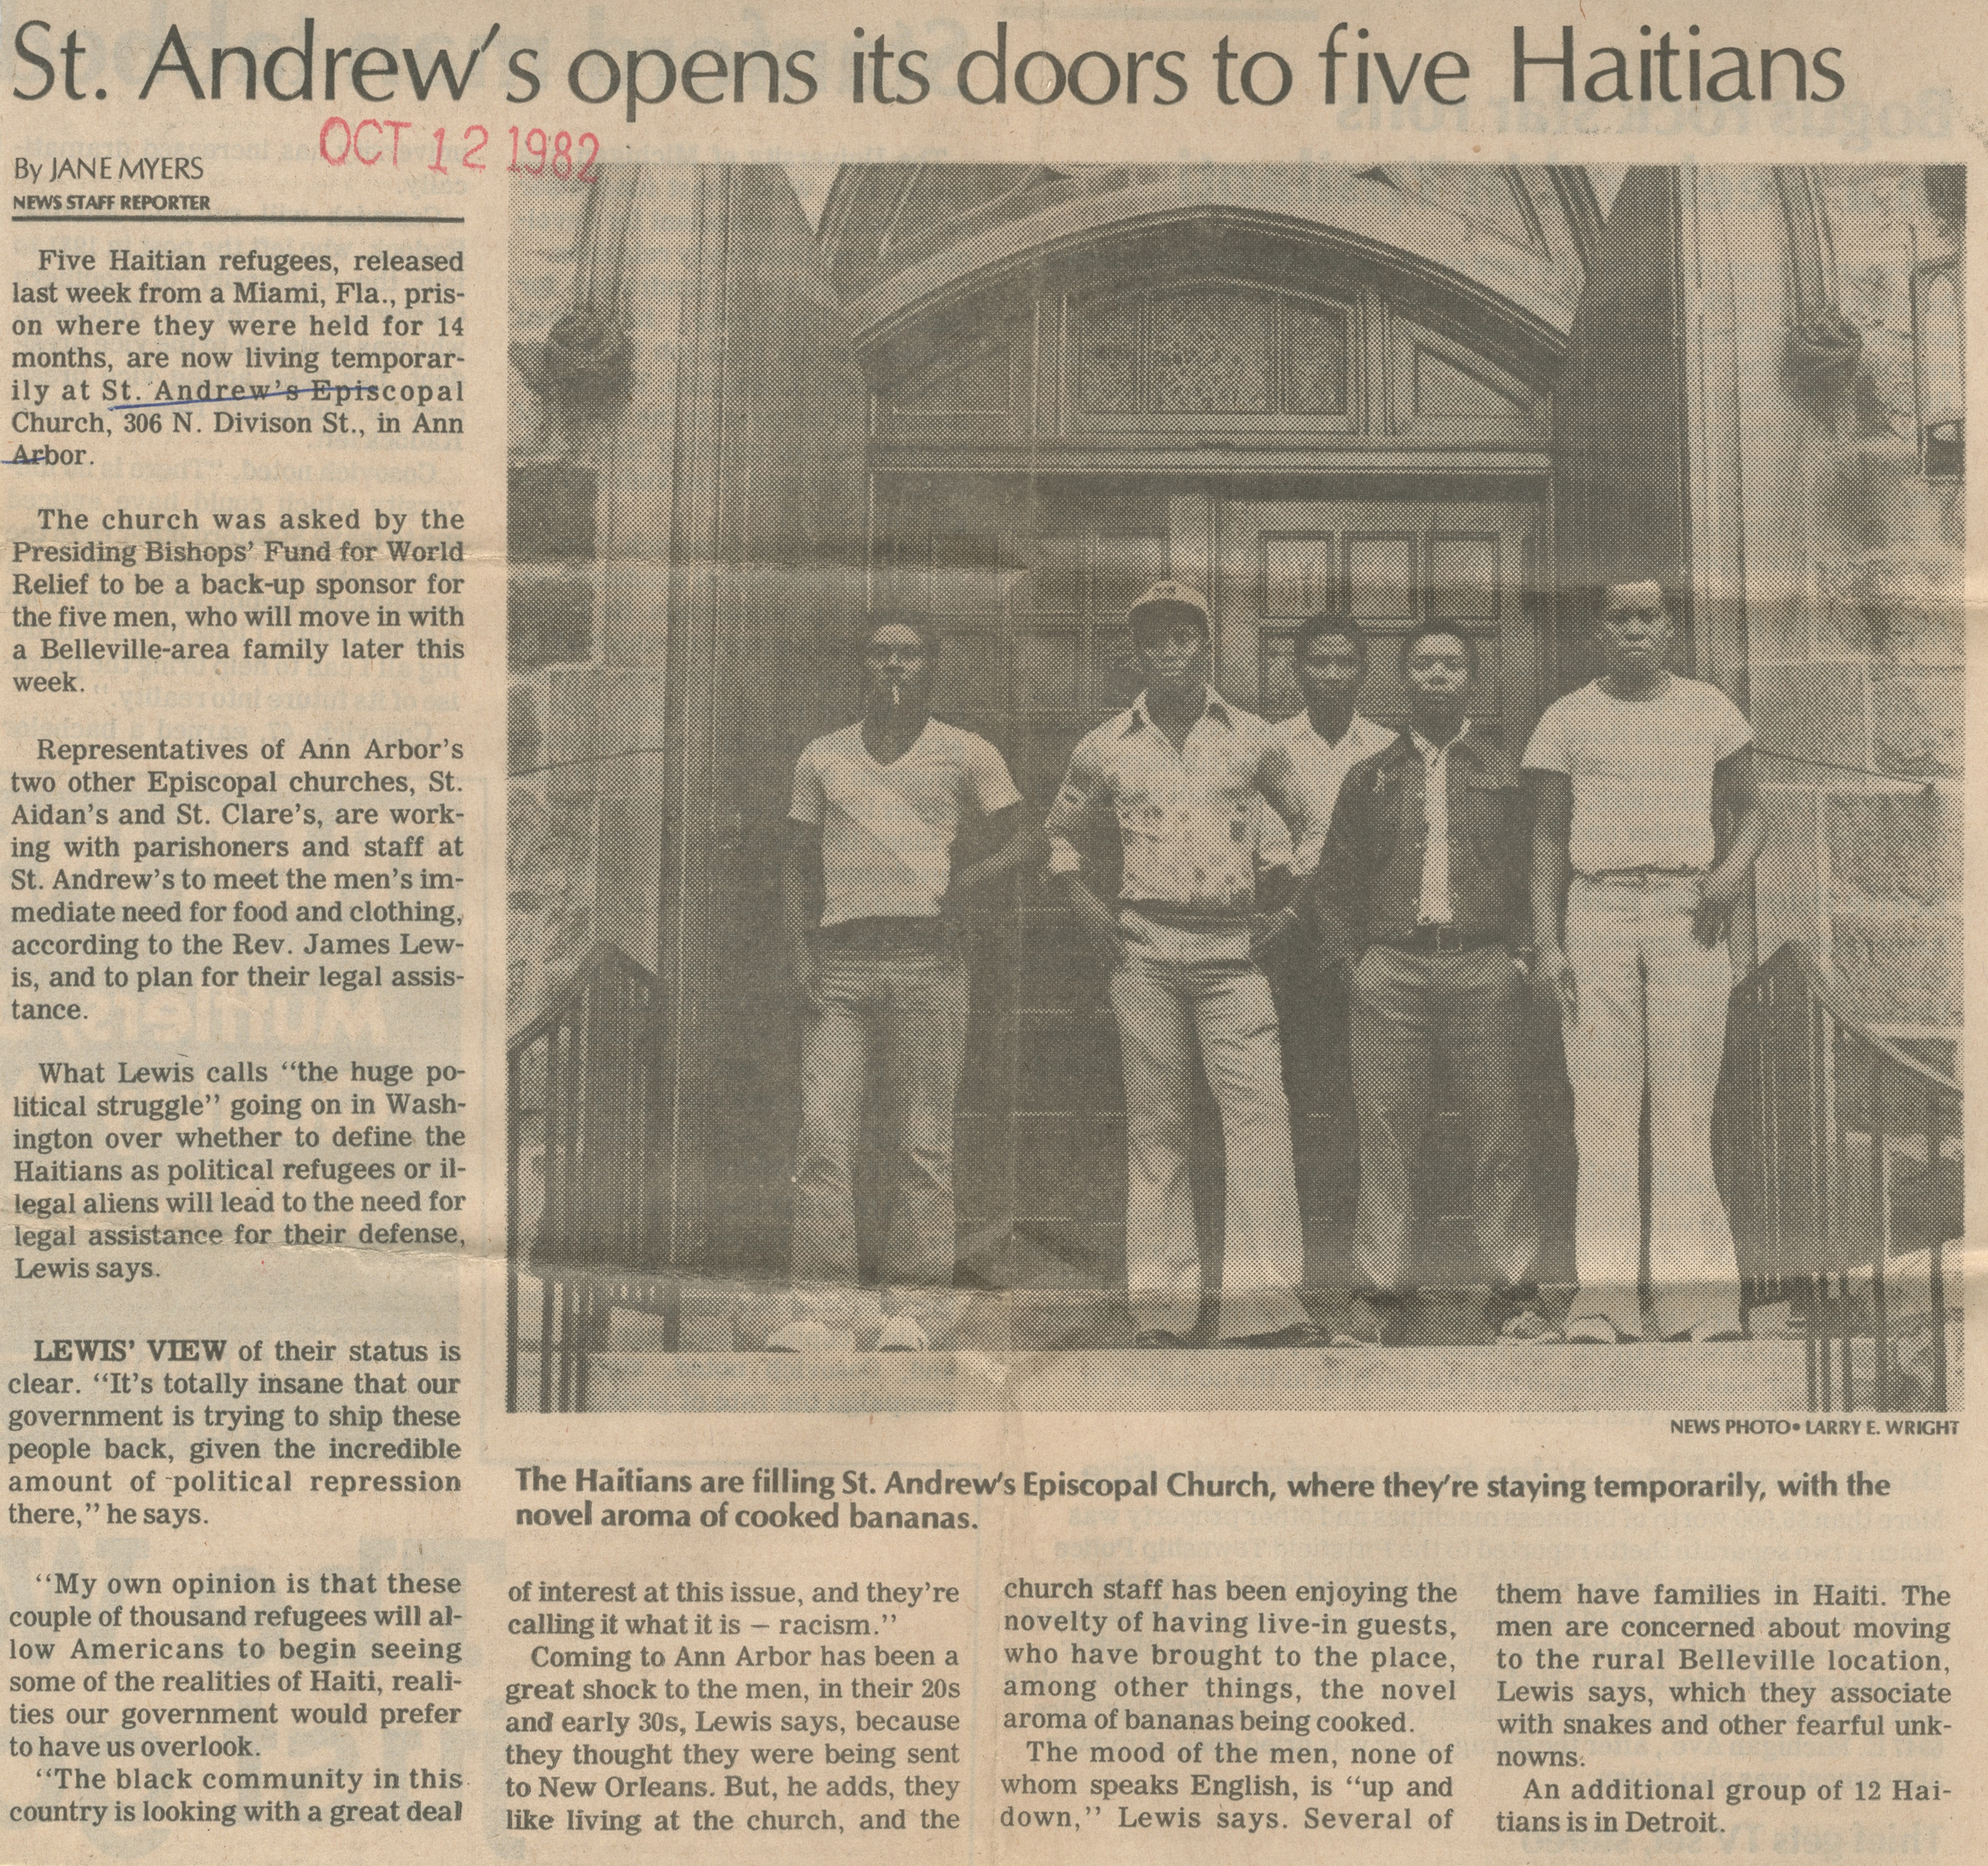 St. Andrew's Opens Its Doors to Five Haitians image